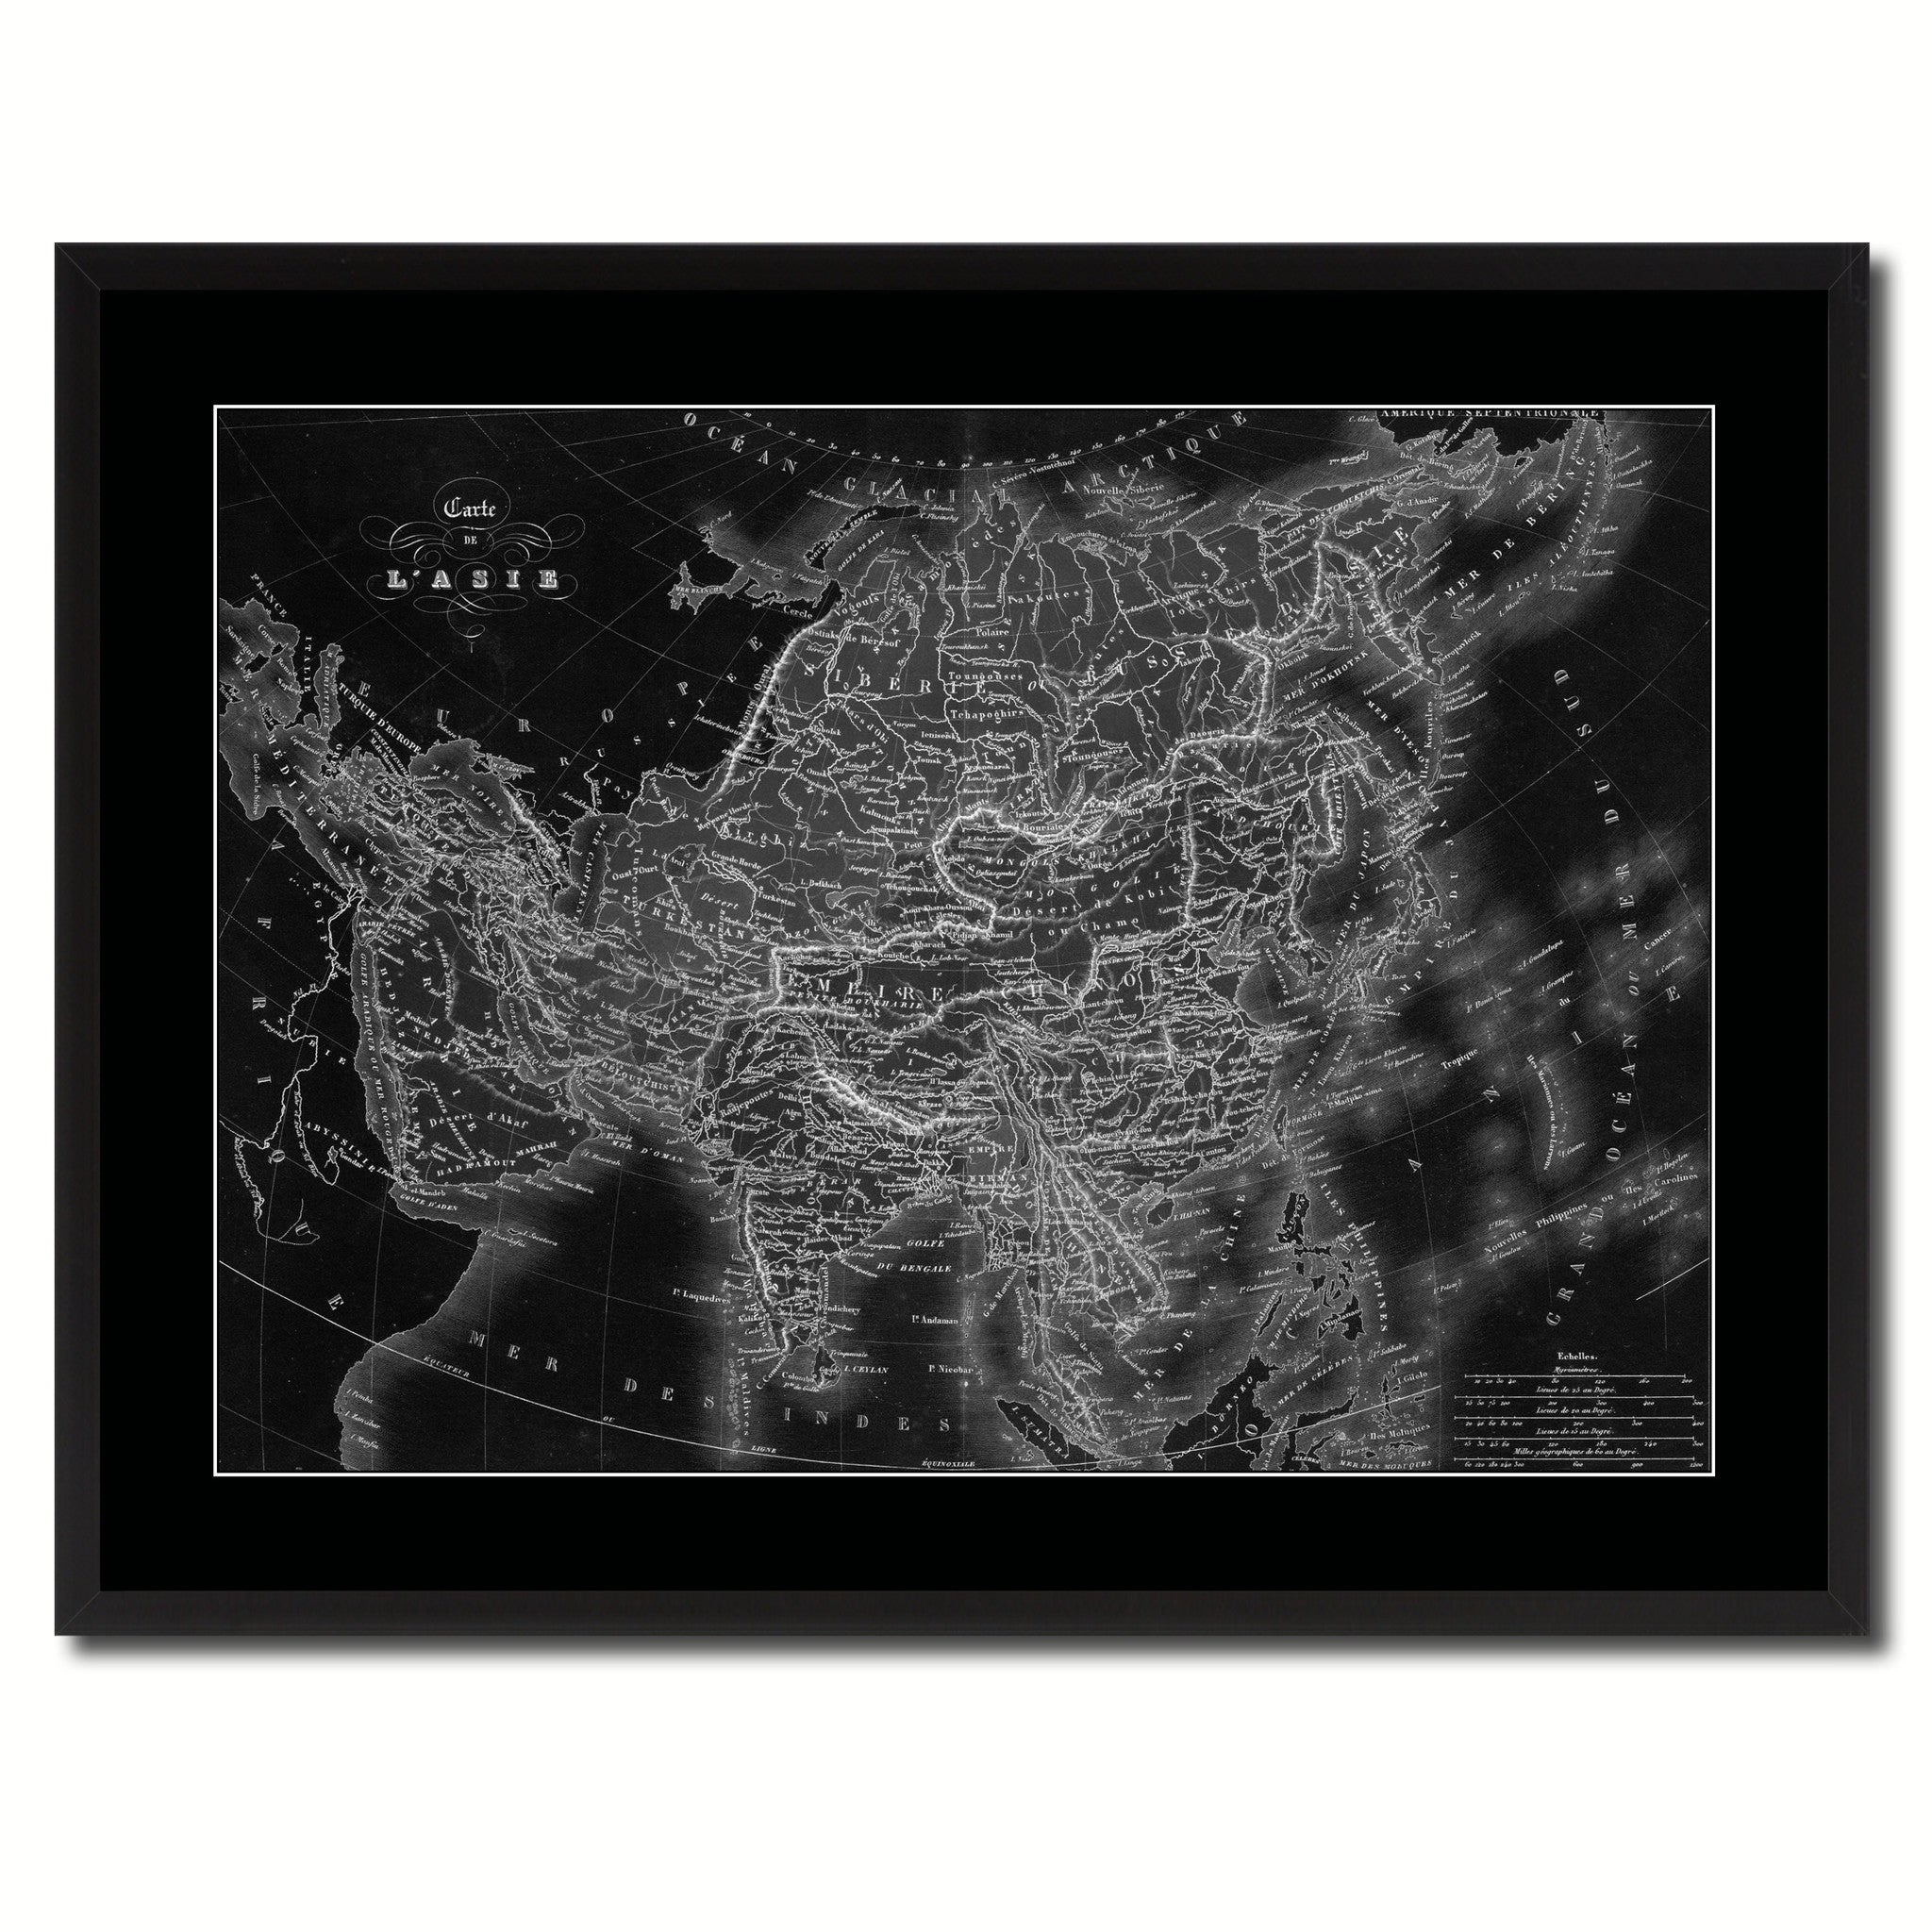 Asia Vintage Monochrome Map Canvas Print, Gifts Picture Frames Home Decor Wall Art